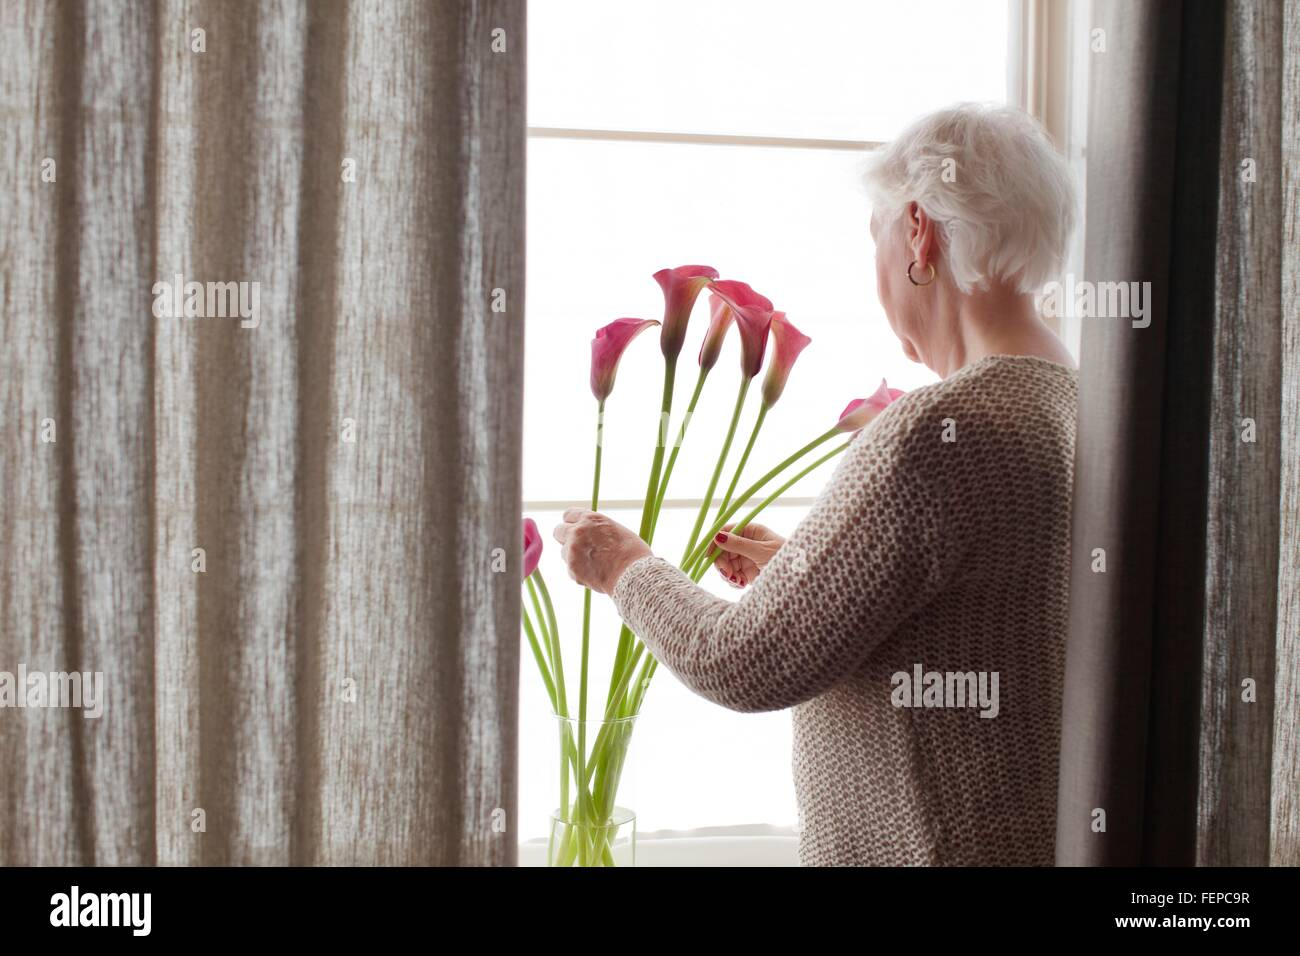 Senior woman arranging flowers in vase, rear view Stock Photo